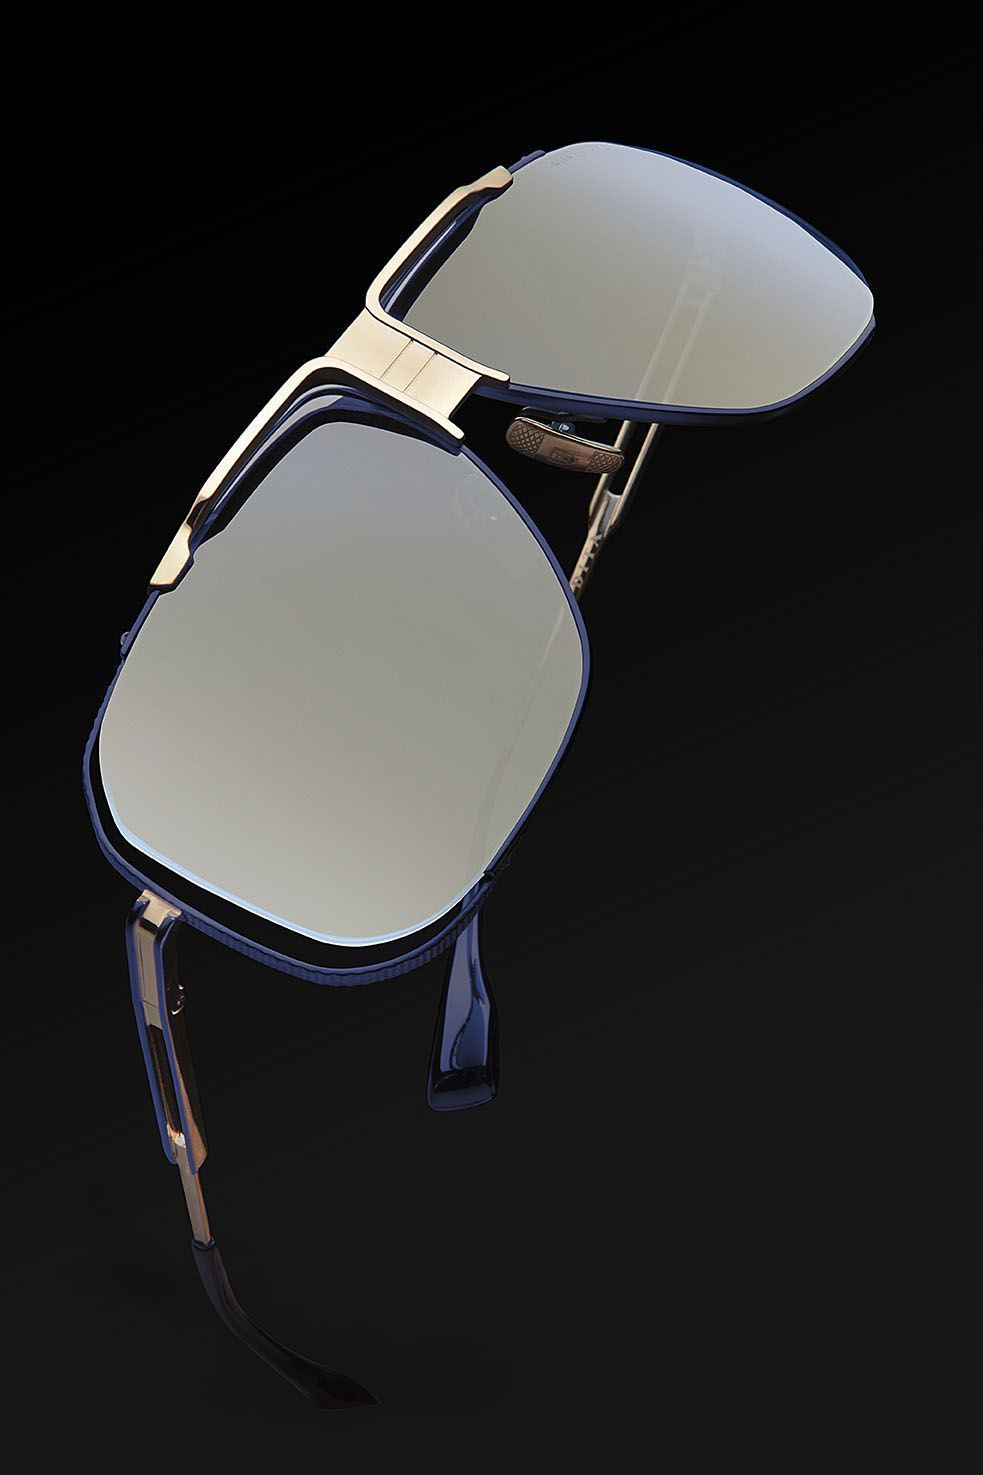 d7b5cf21f3f9 The Dita Cascais in Navy and Gold  DITAeyewear